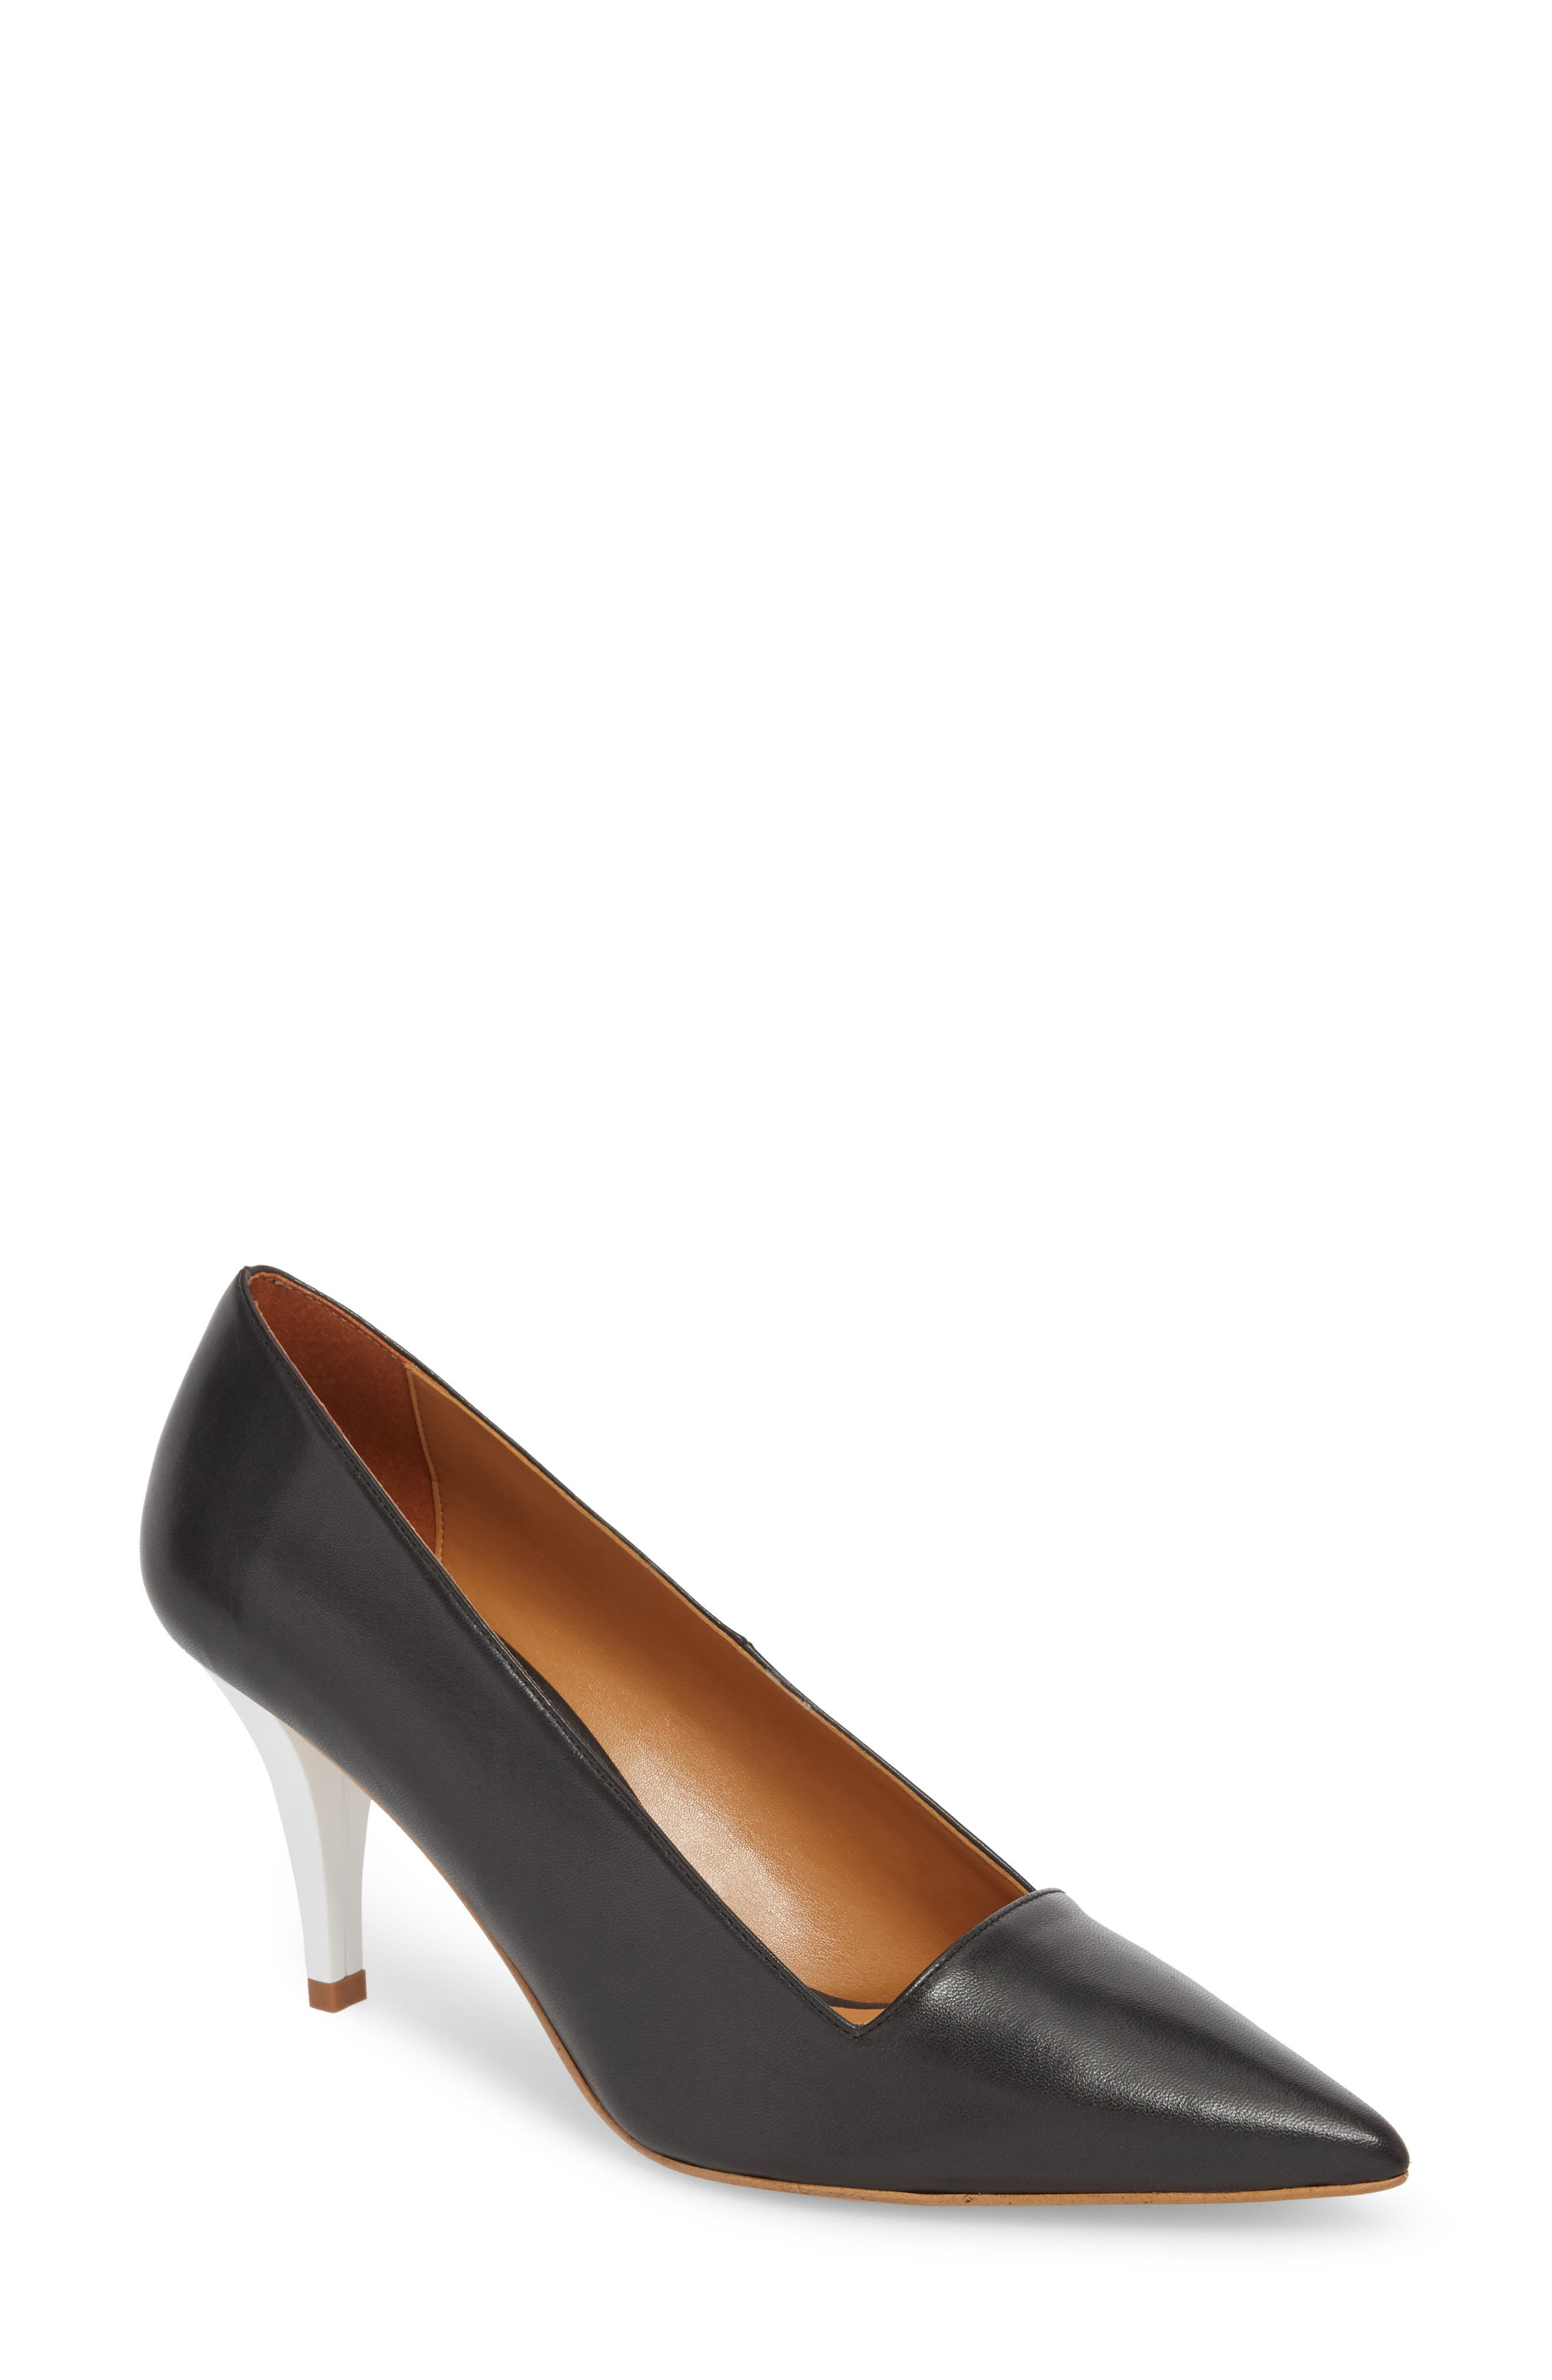 Jubilee Pointy Toe Pump,                         Main,                         color, Black Multi